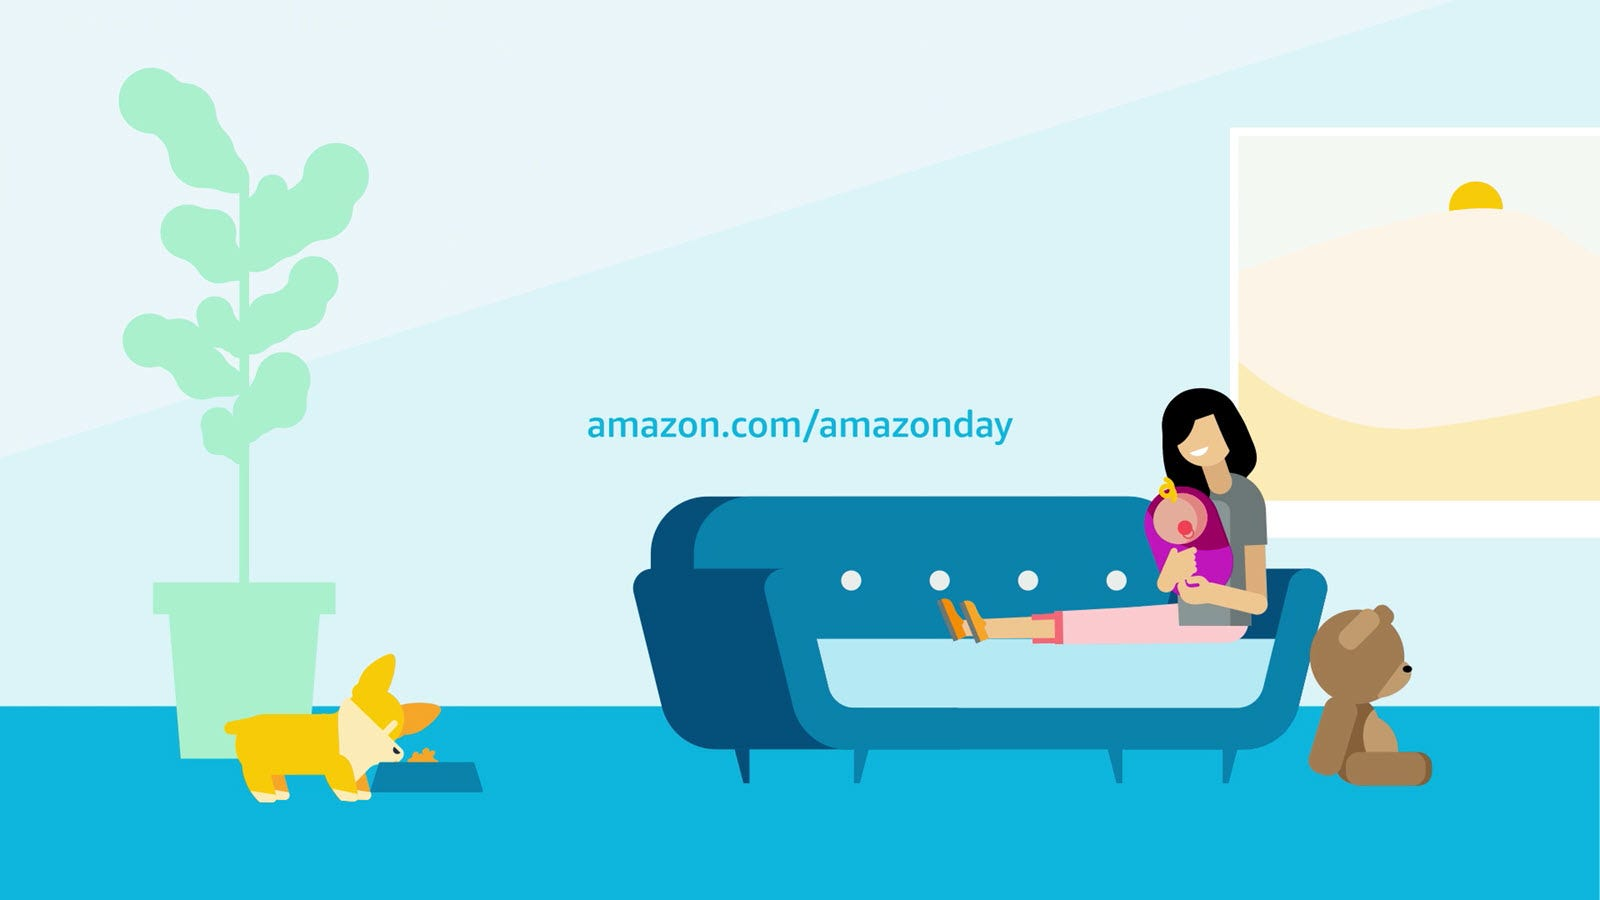 Amazon Day Graphic with Woman Sitting on Couch